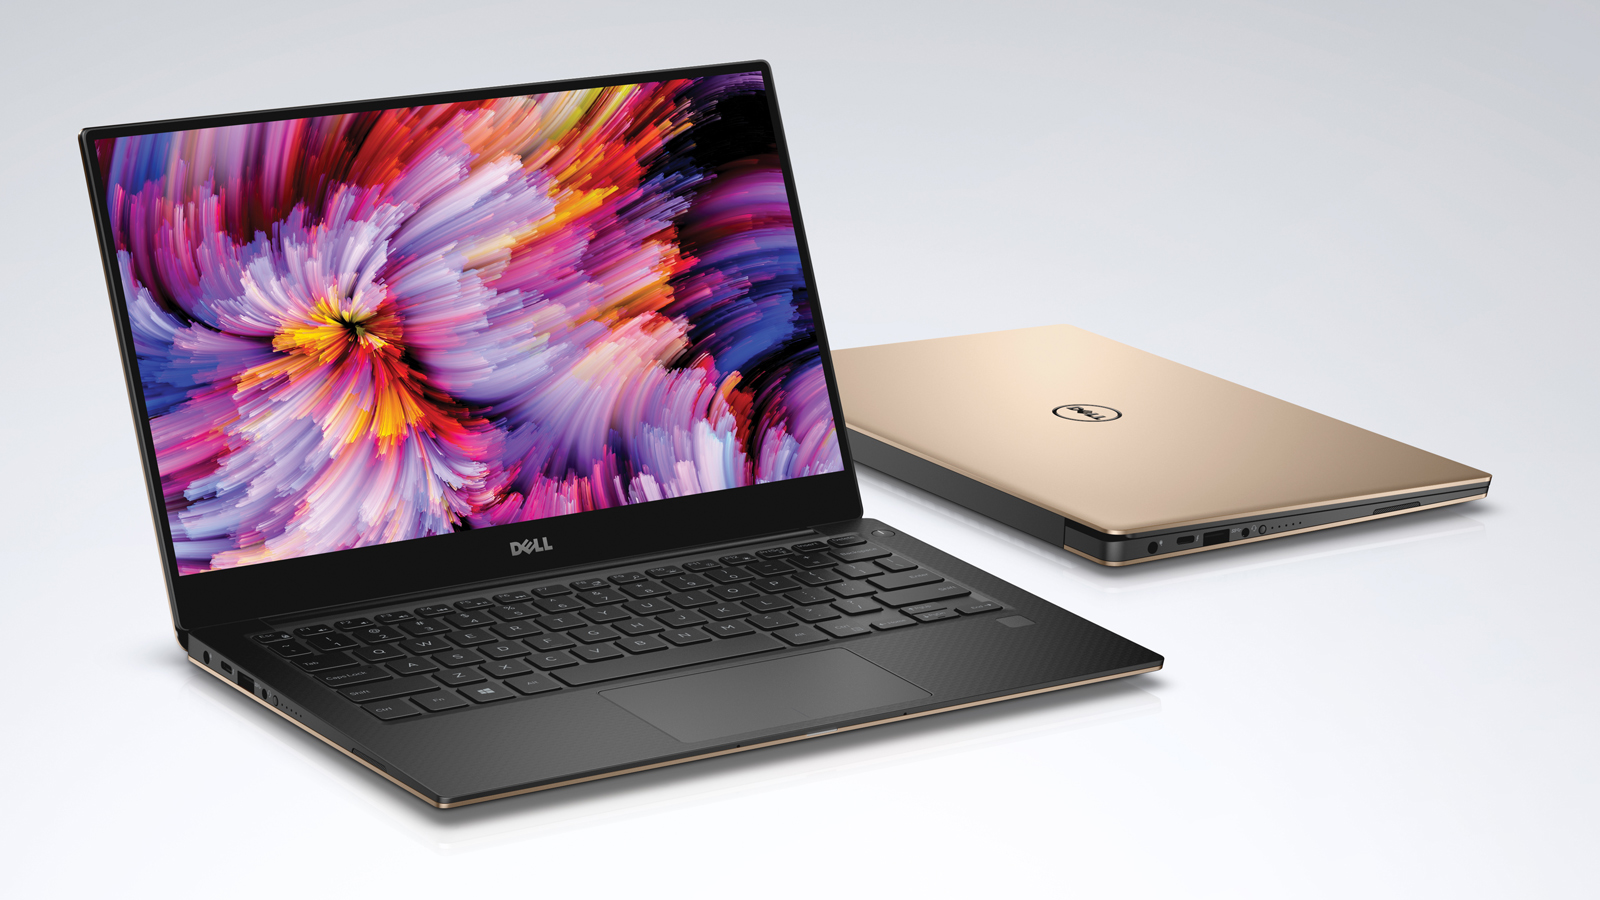 Dell S Updated Xps 13 Includes A Rose Gold Model